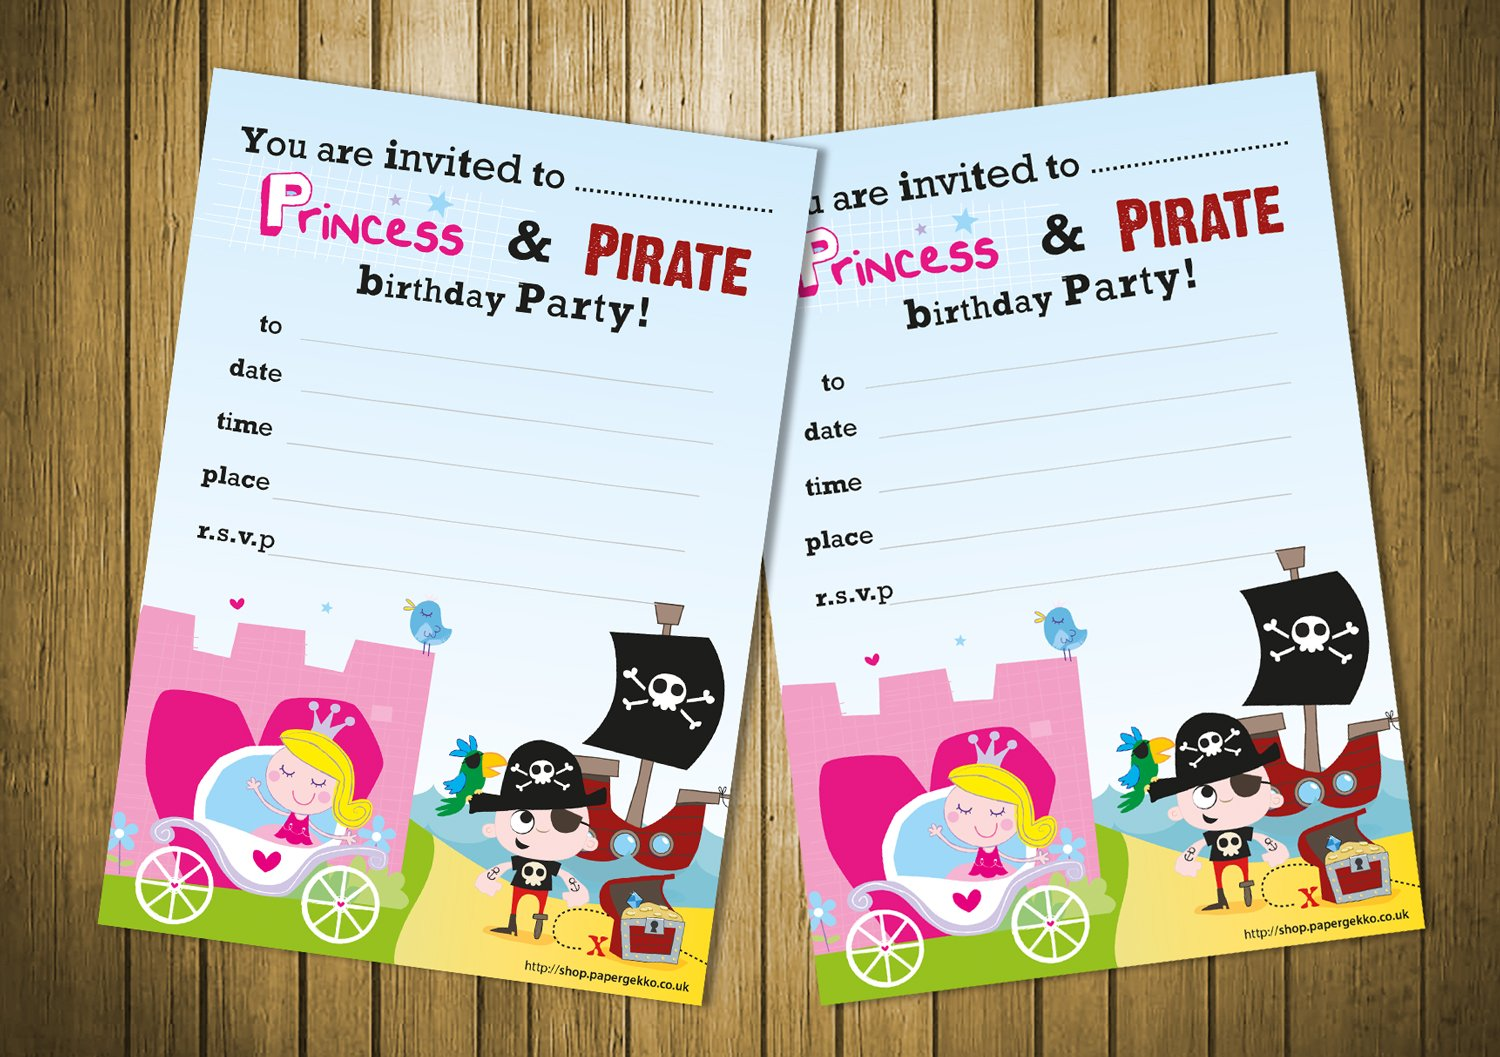 Premium 20 Children's Birthday Party Invitations Princess and Pirate Party Boys girls party invites Paper Gekko